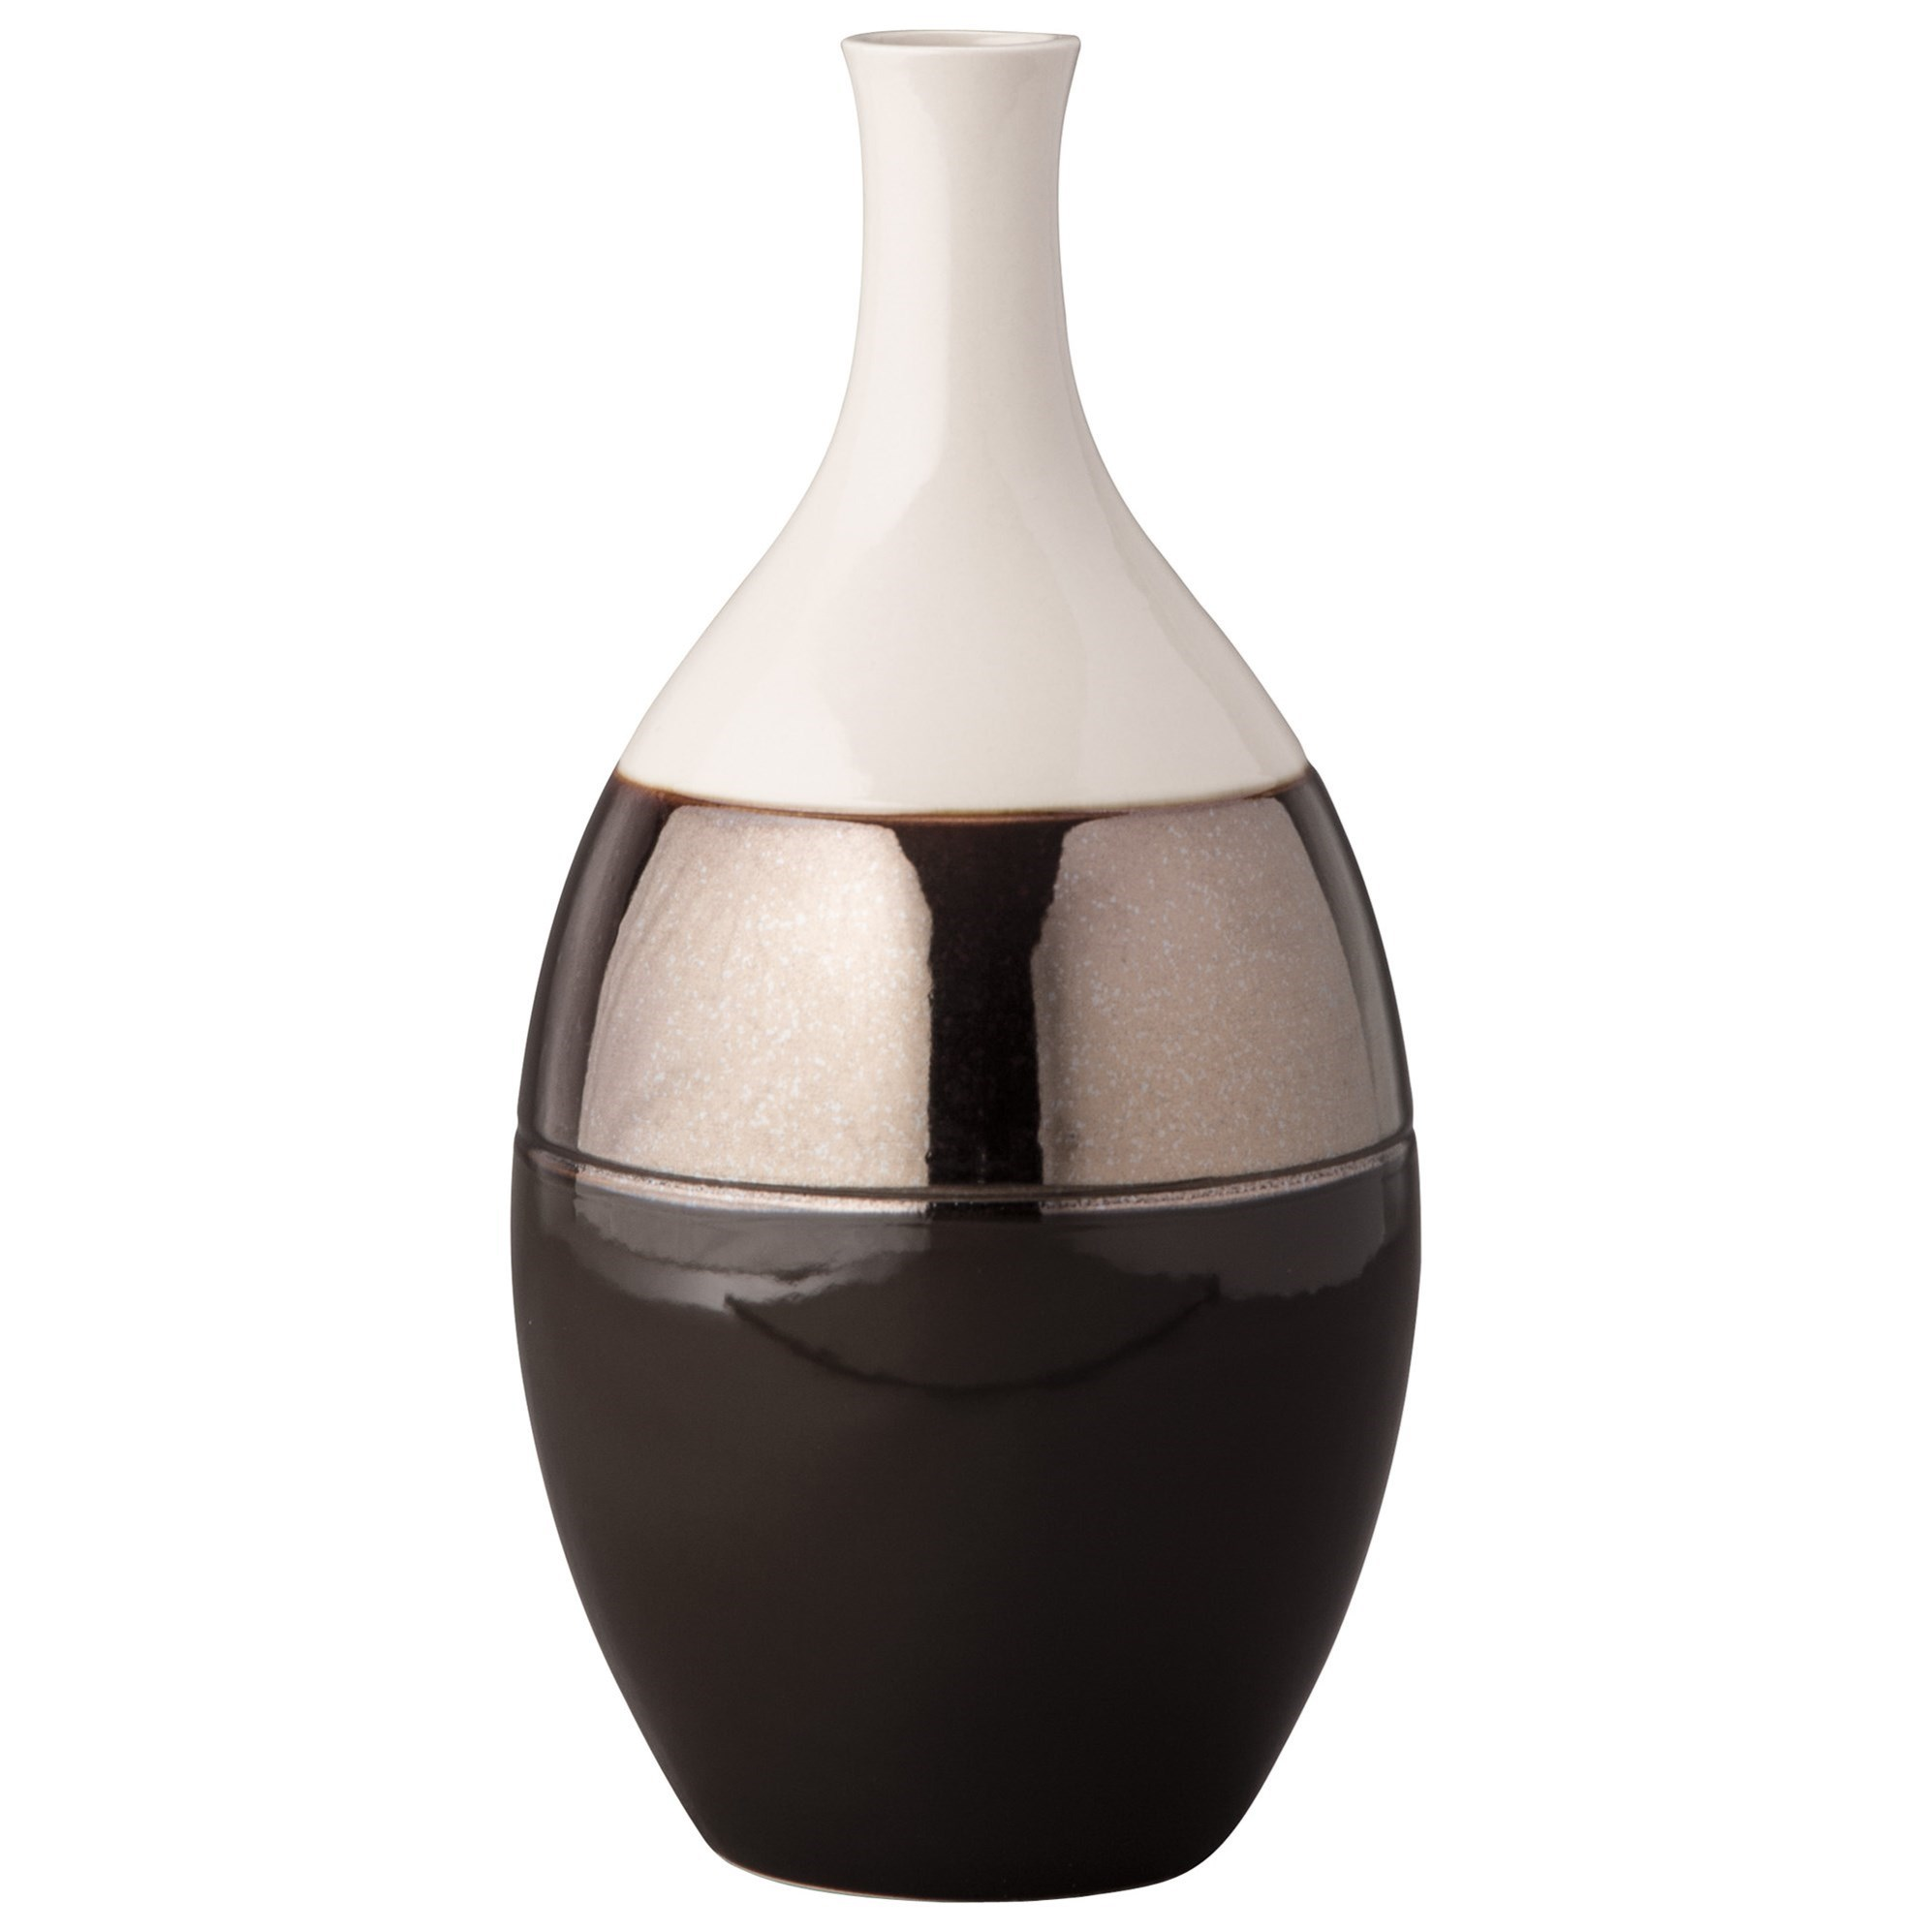 Signature Design by Ashley Accents Dericia Brown/Cream Vase - Item Number: A2000309